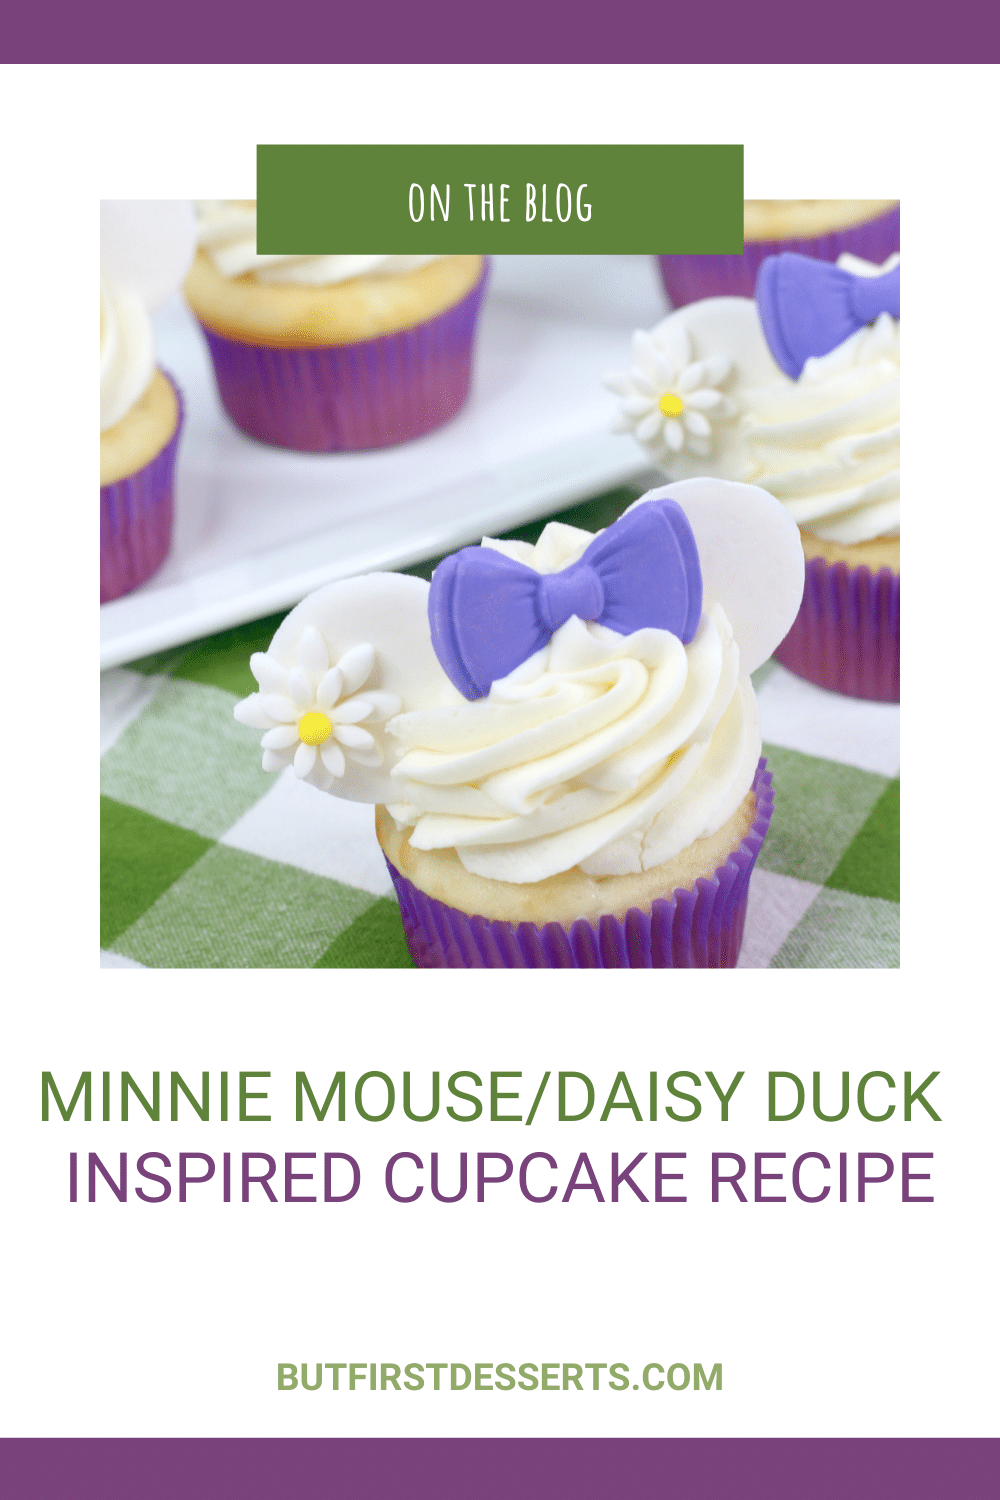 Minnie Mouse| Daisy Duck Inspired Cupcake Recipe